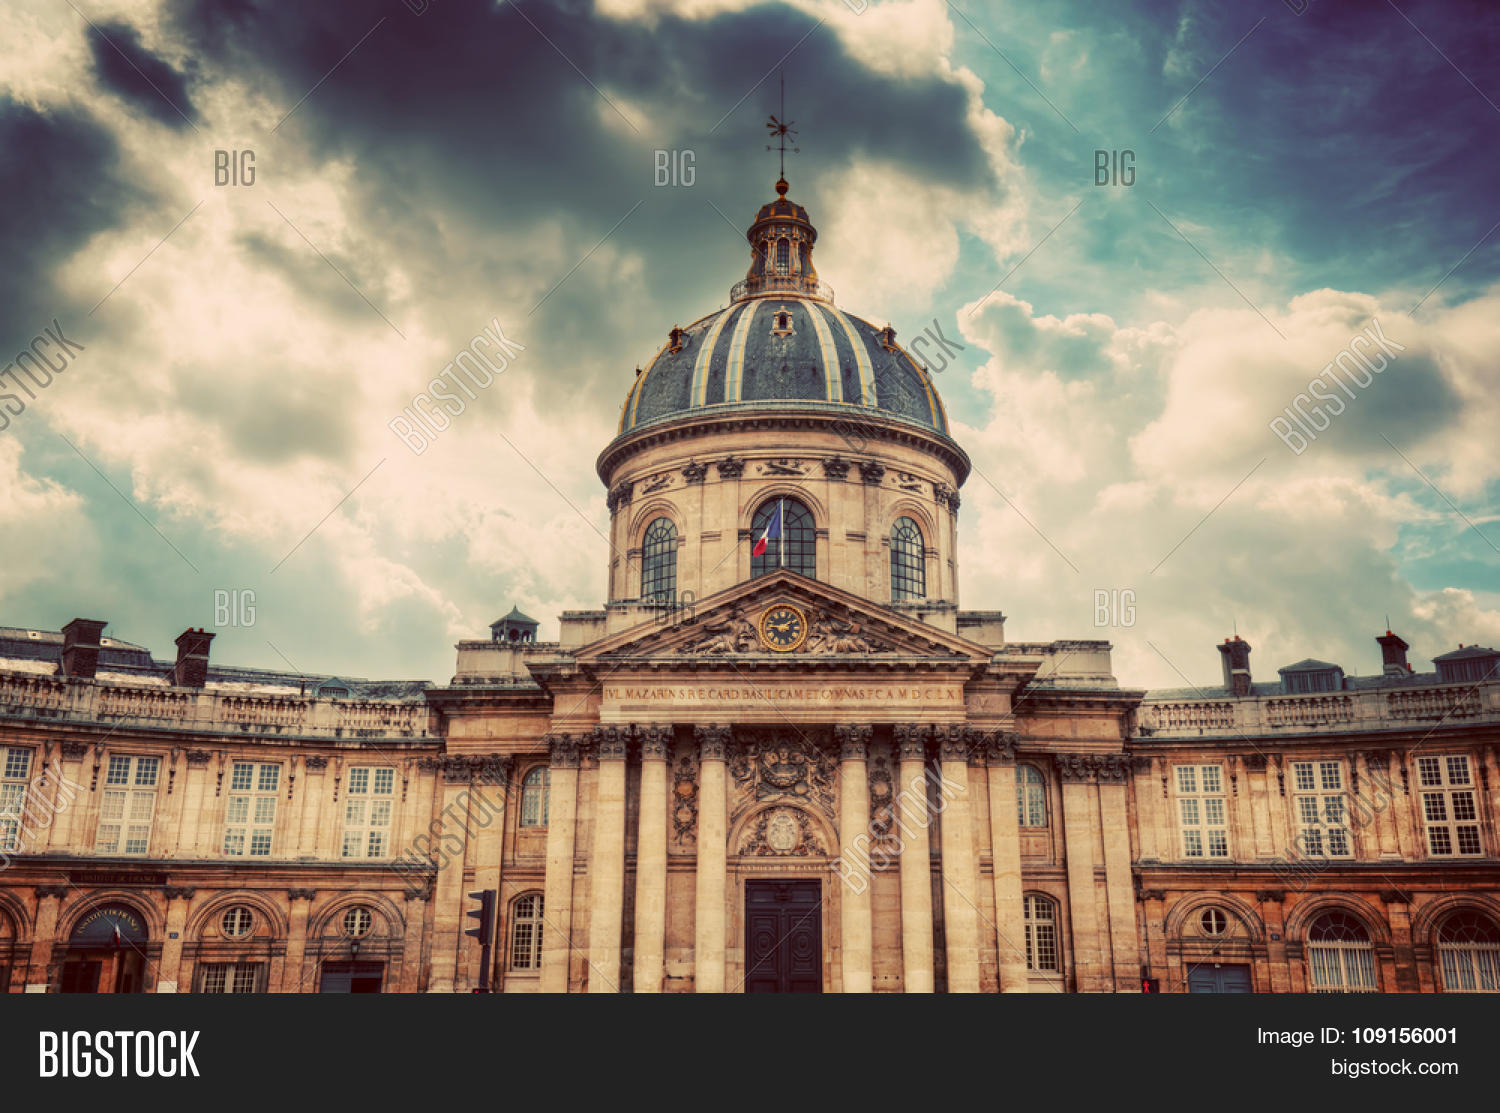 institut de france image photo free trial bigstock